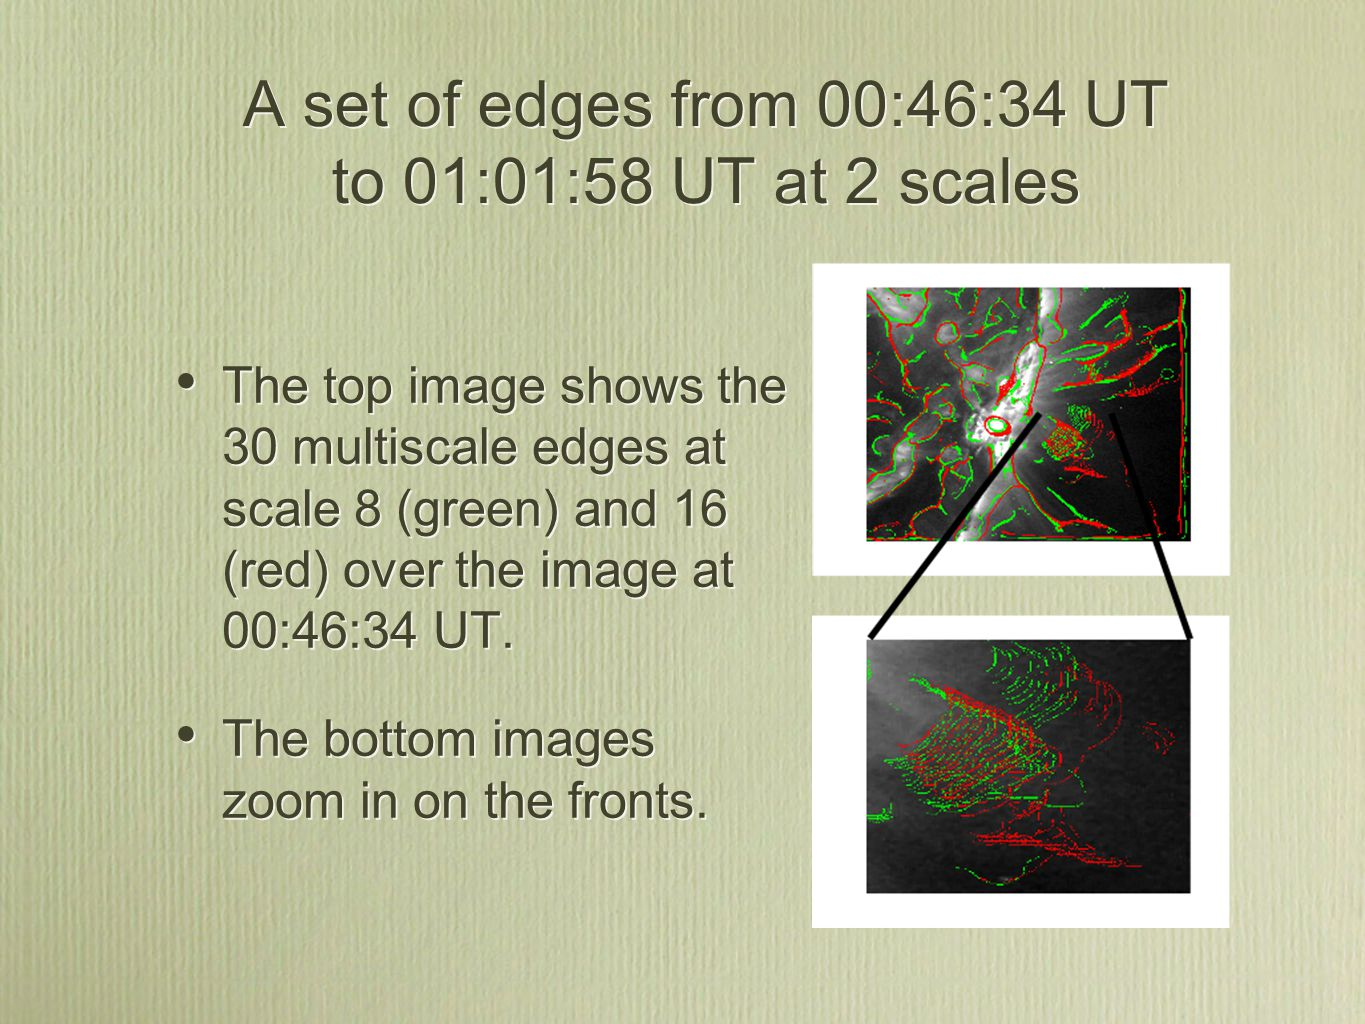 The top image shows the 30 multiscale edges at scale 8 (green) and 16 (red) over the image at 00:46:34 UT. The bottom images zoom in on the fronts. Th